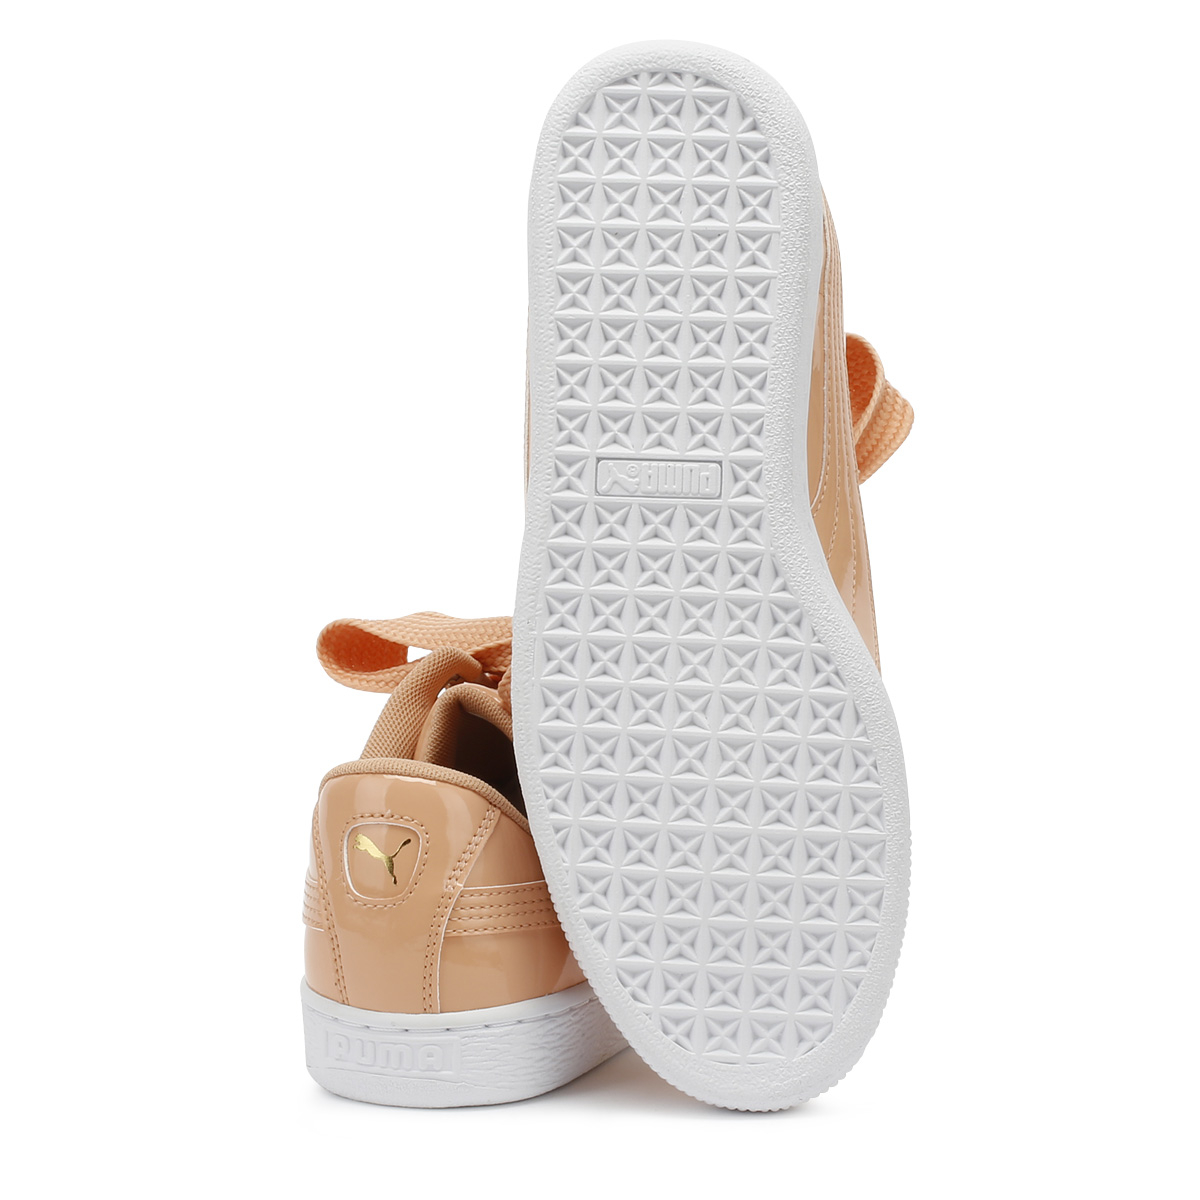 314807a77ca6f6 PUMA Womens Trainers Dusty Coral Basket Heart Patent Sport Casual Shoes